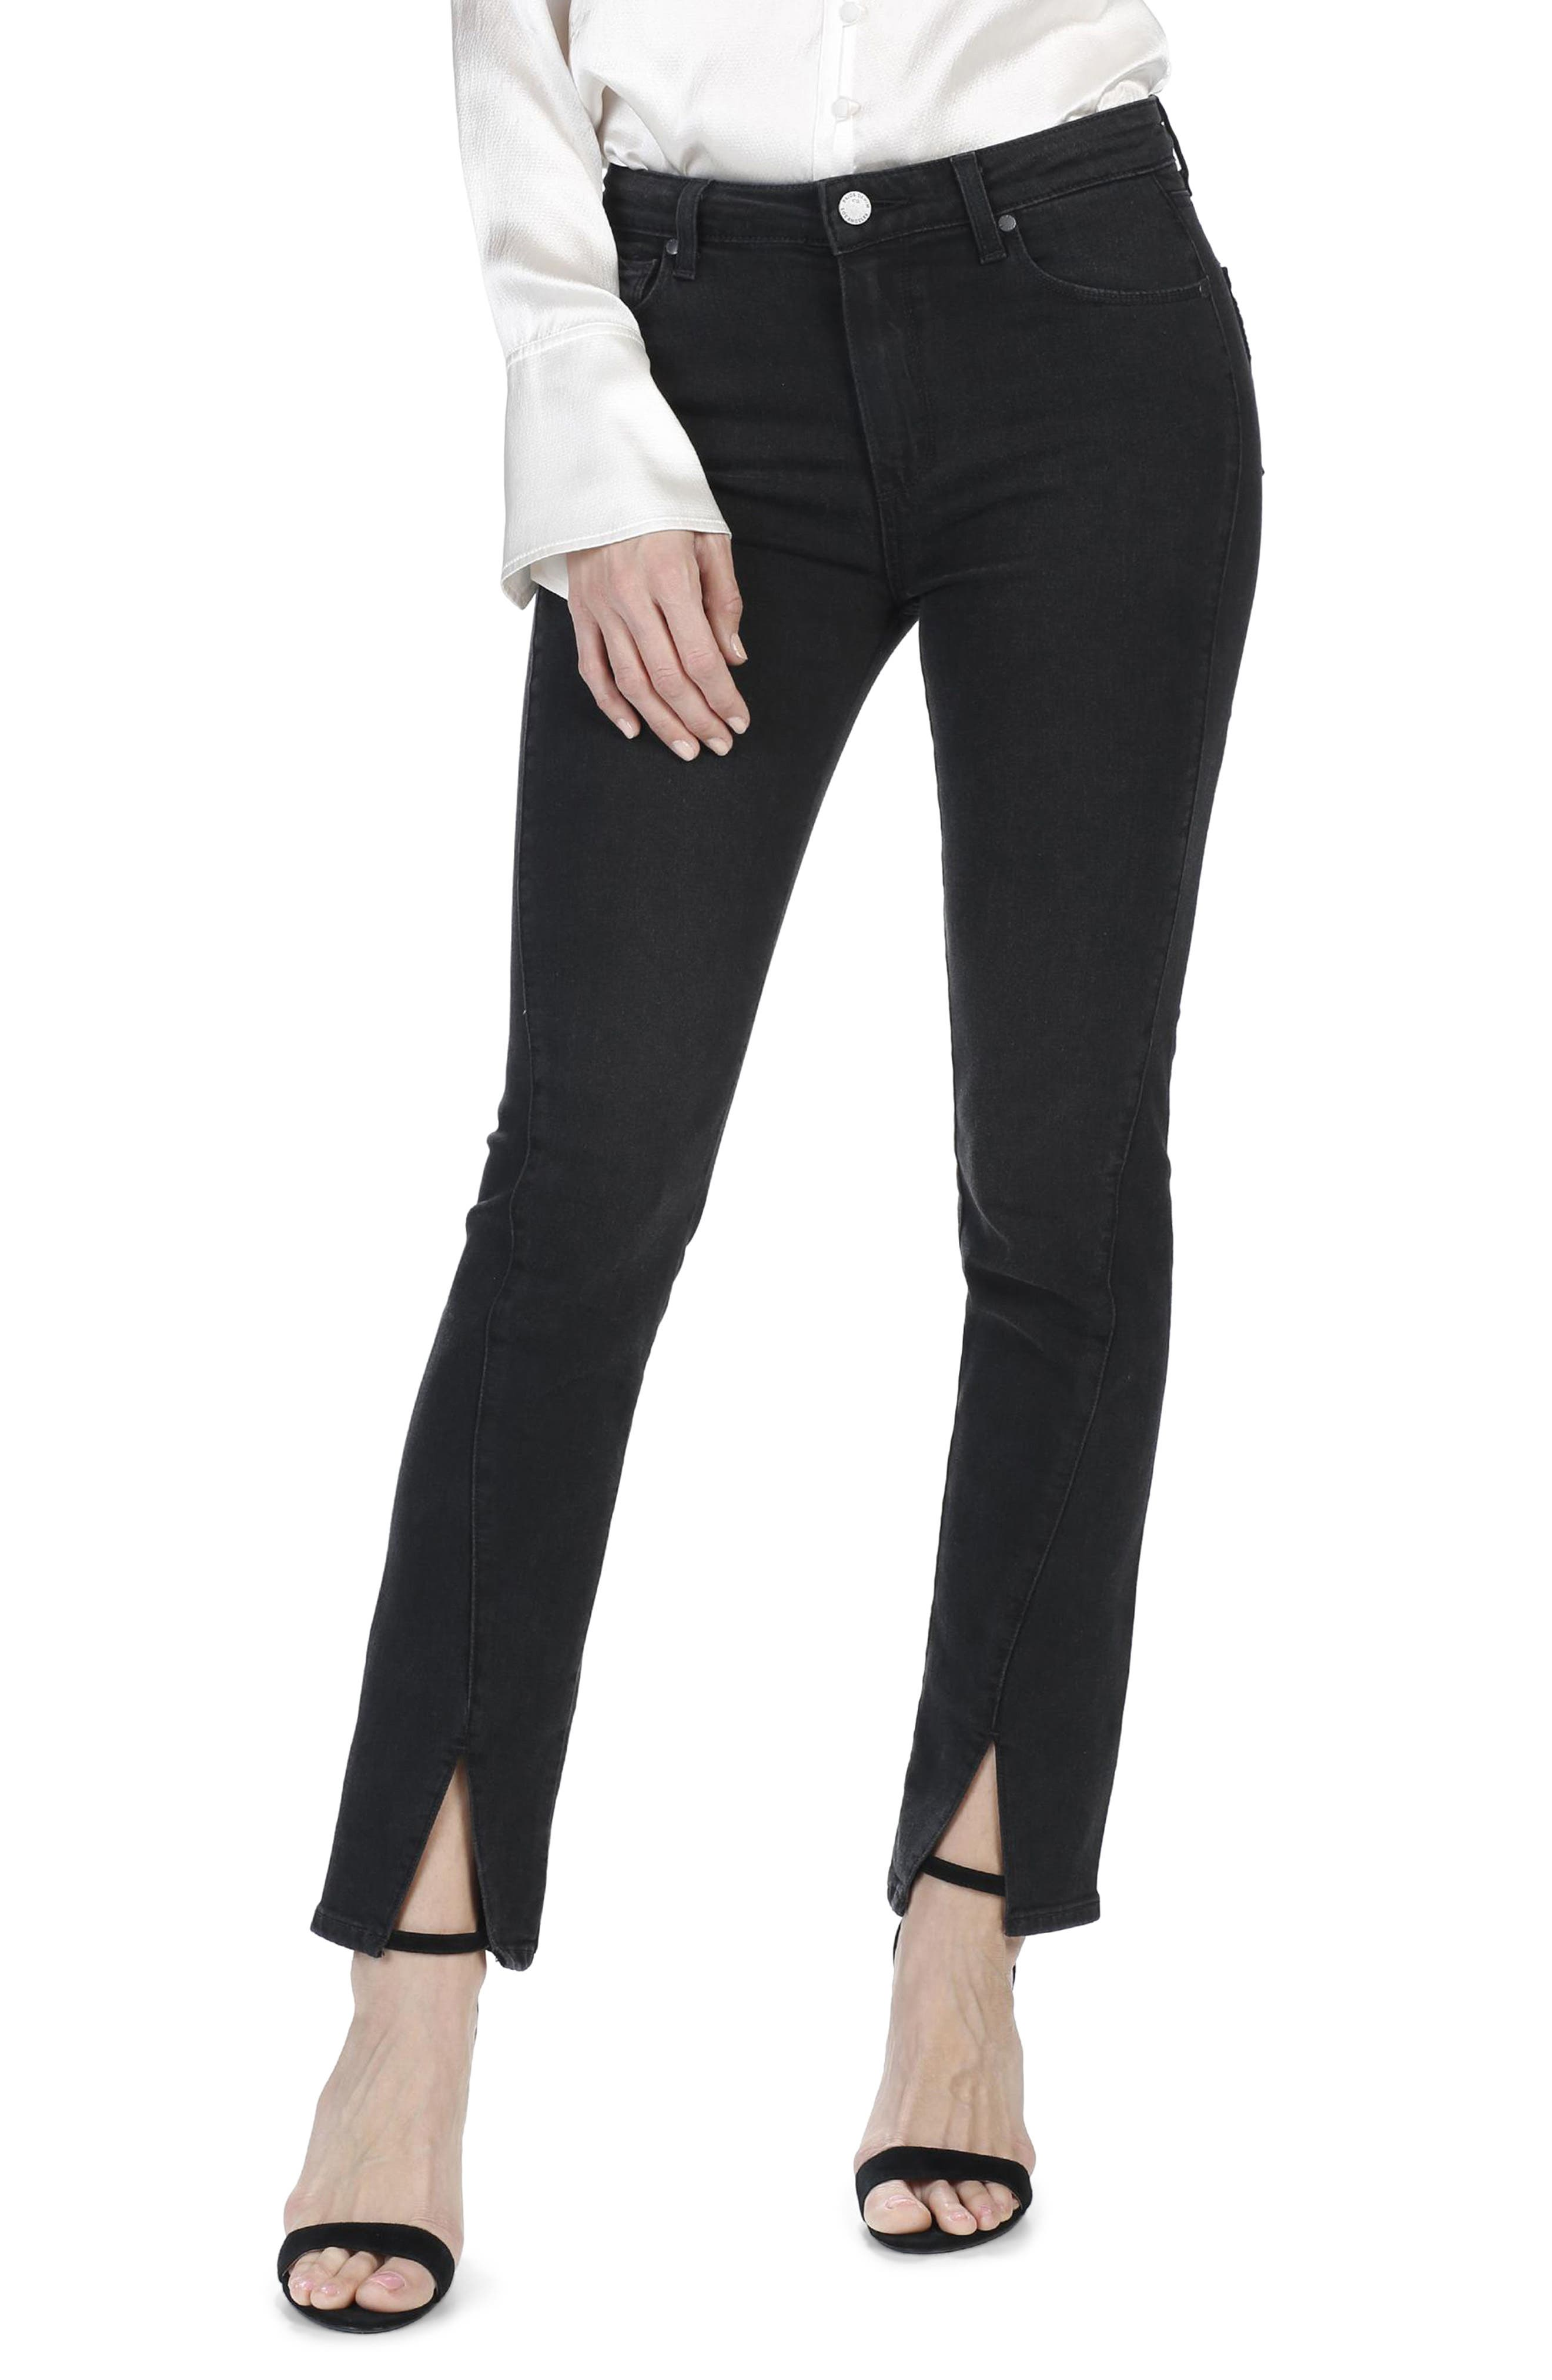 Alternate Image 1 Selected - PAIGE Julia High Waist Straight Leg Jeans with Twisted Seams (Black Fog)